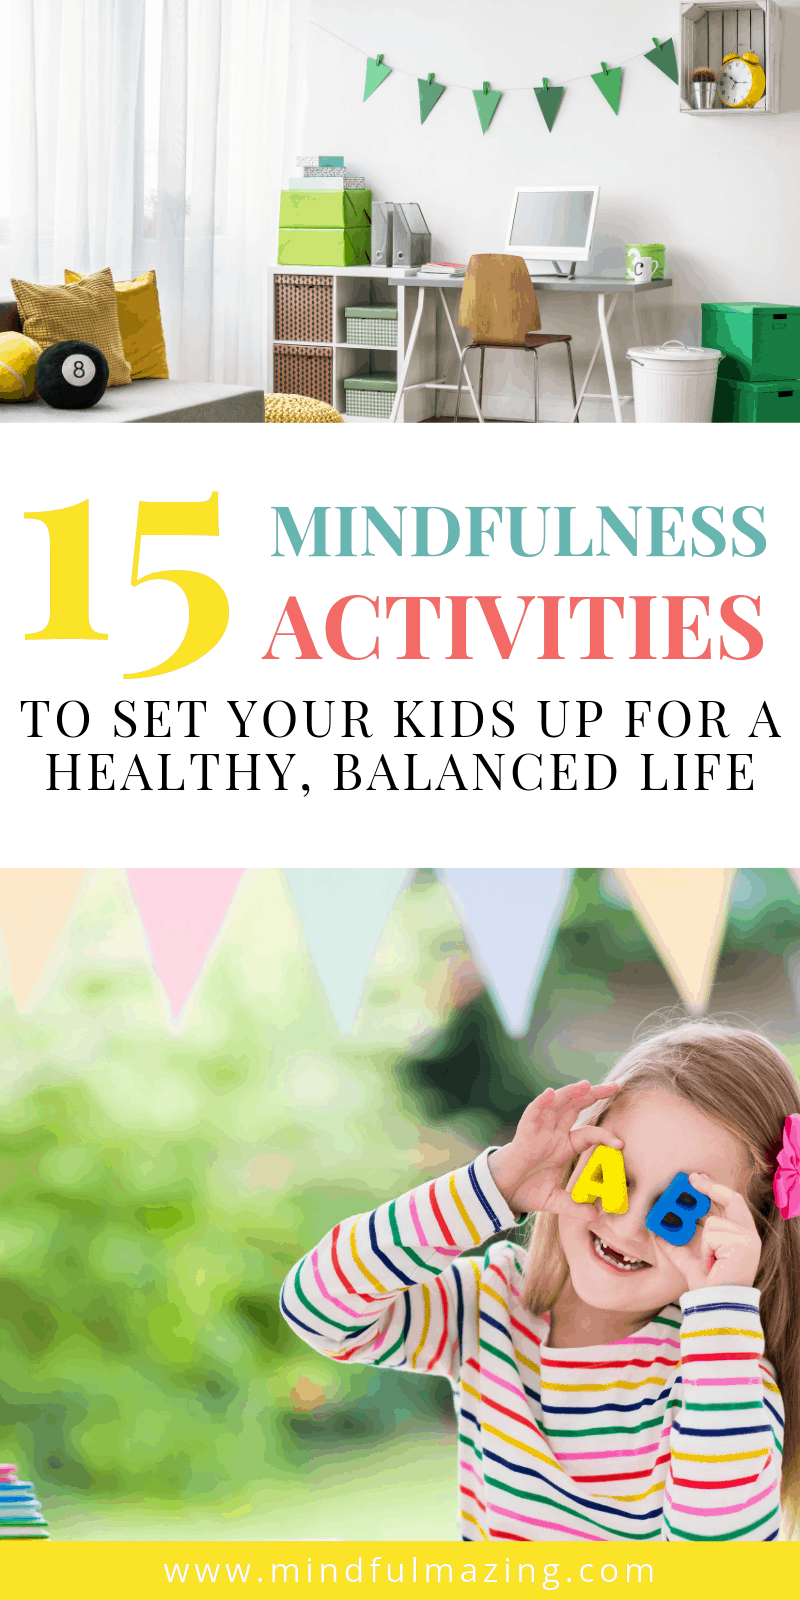 Mindfulness is a great way for kids to calm down and focus. Check out these 15 Mindfulness Exercises for kids of all ages.